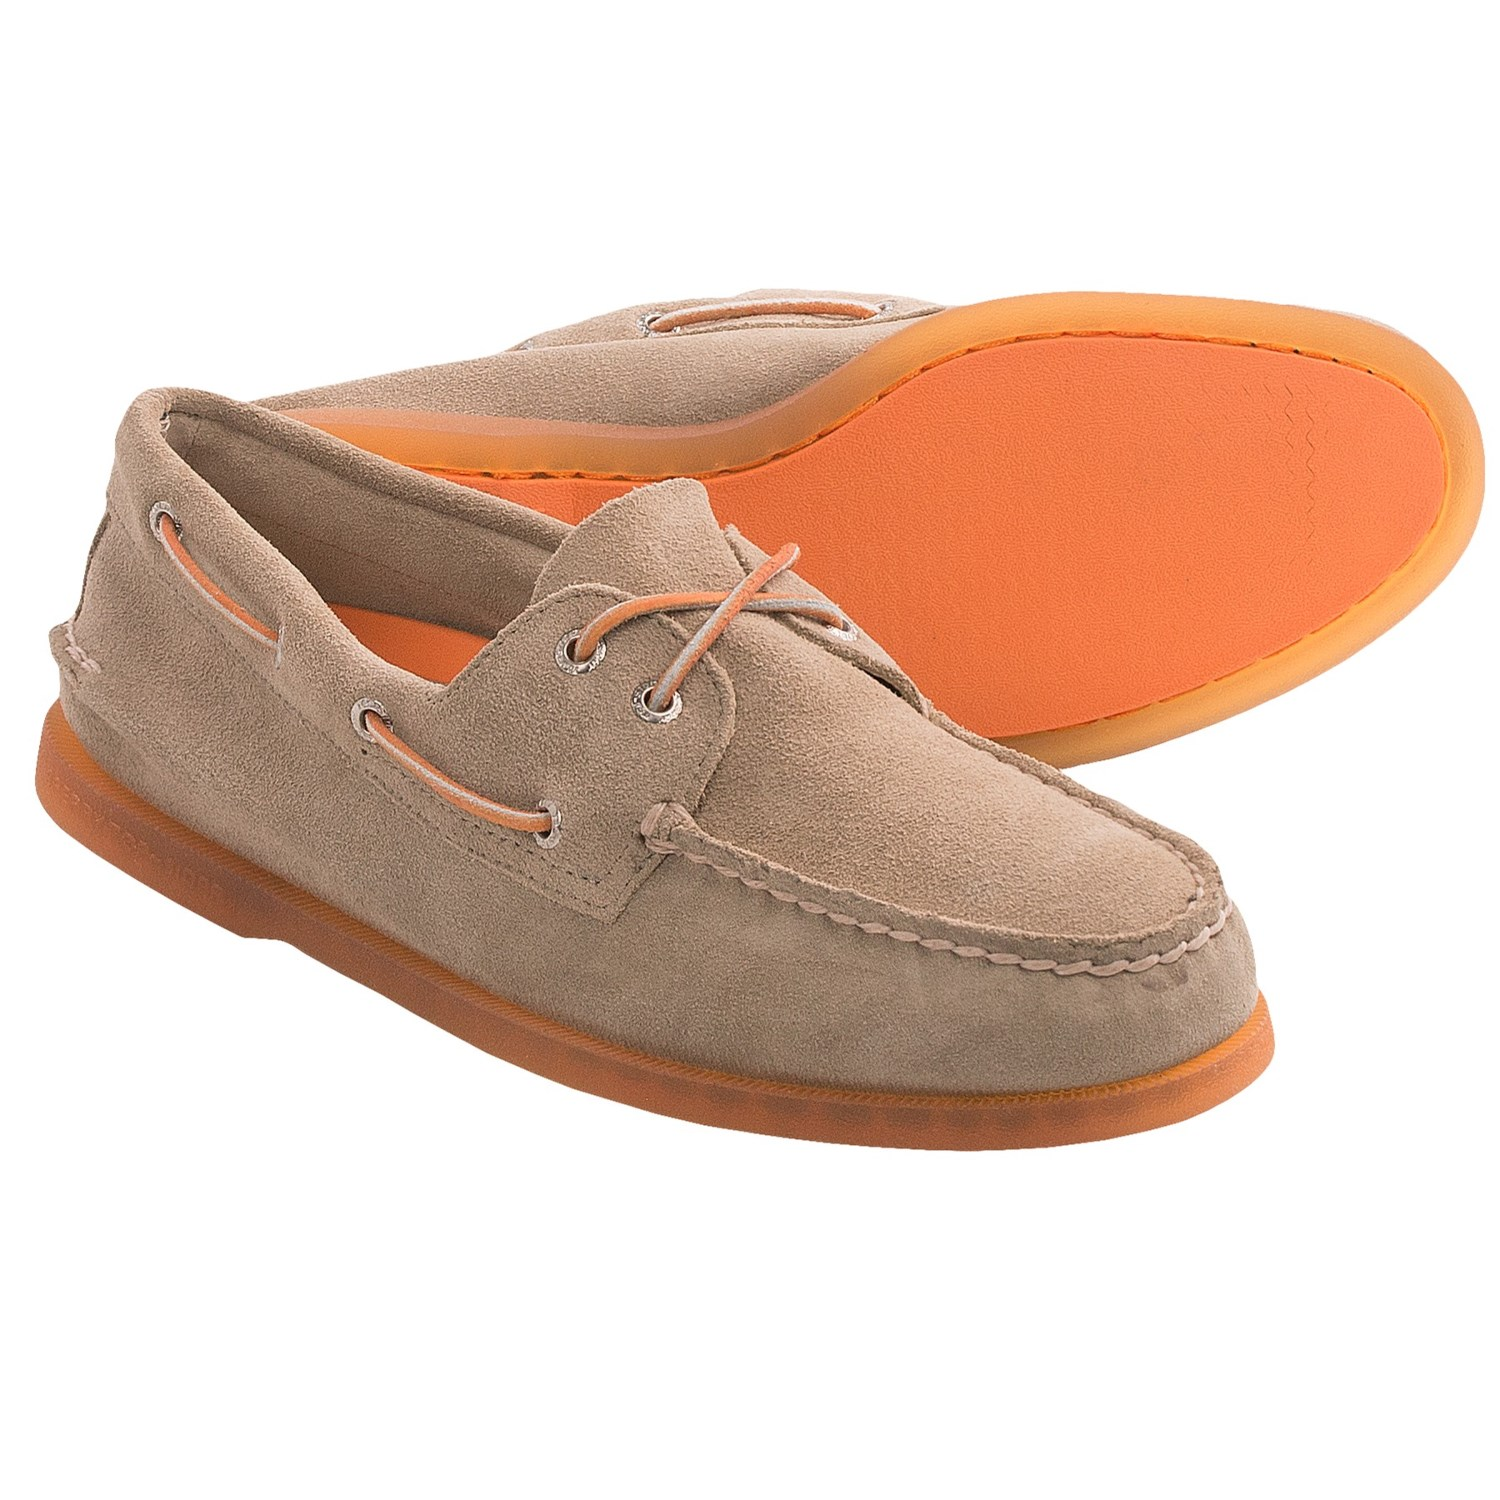 Boat shoes on sale - from UGG to Sperry Top-Sider - Mashup Mom